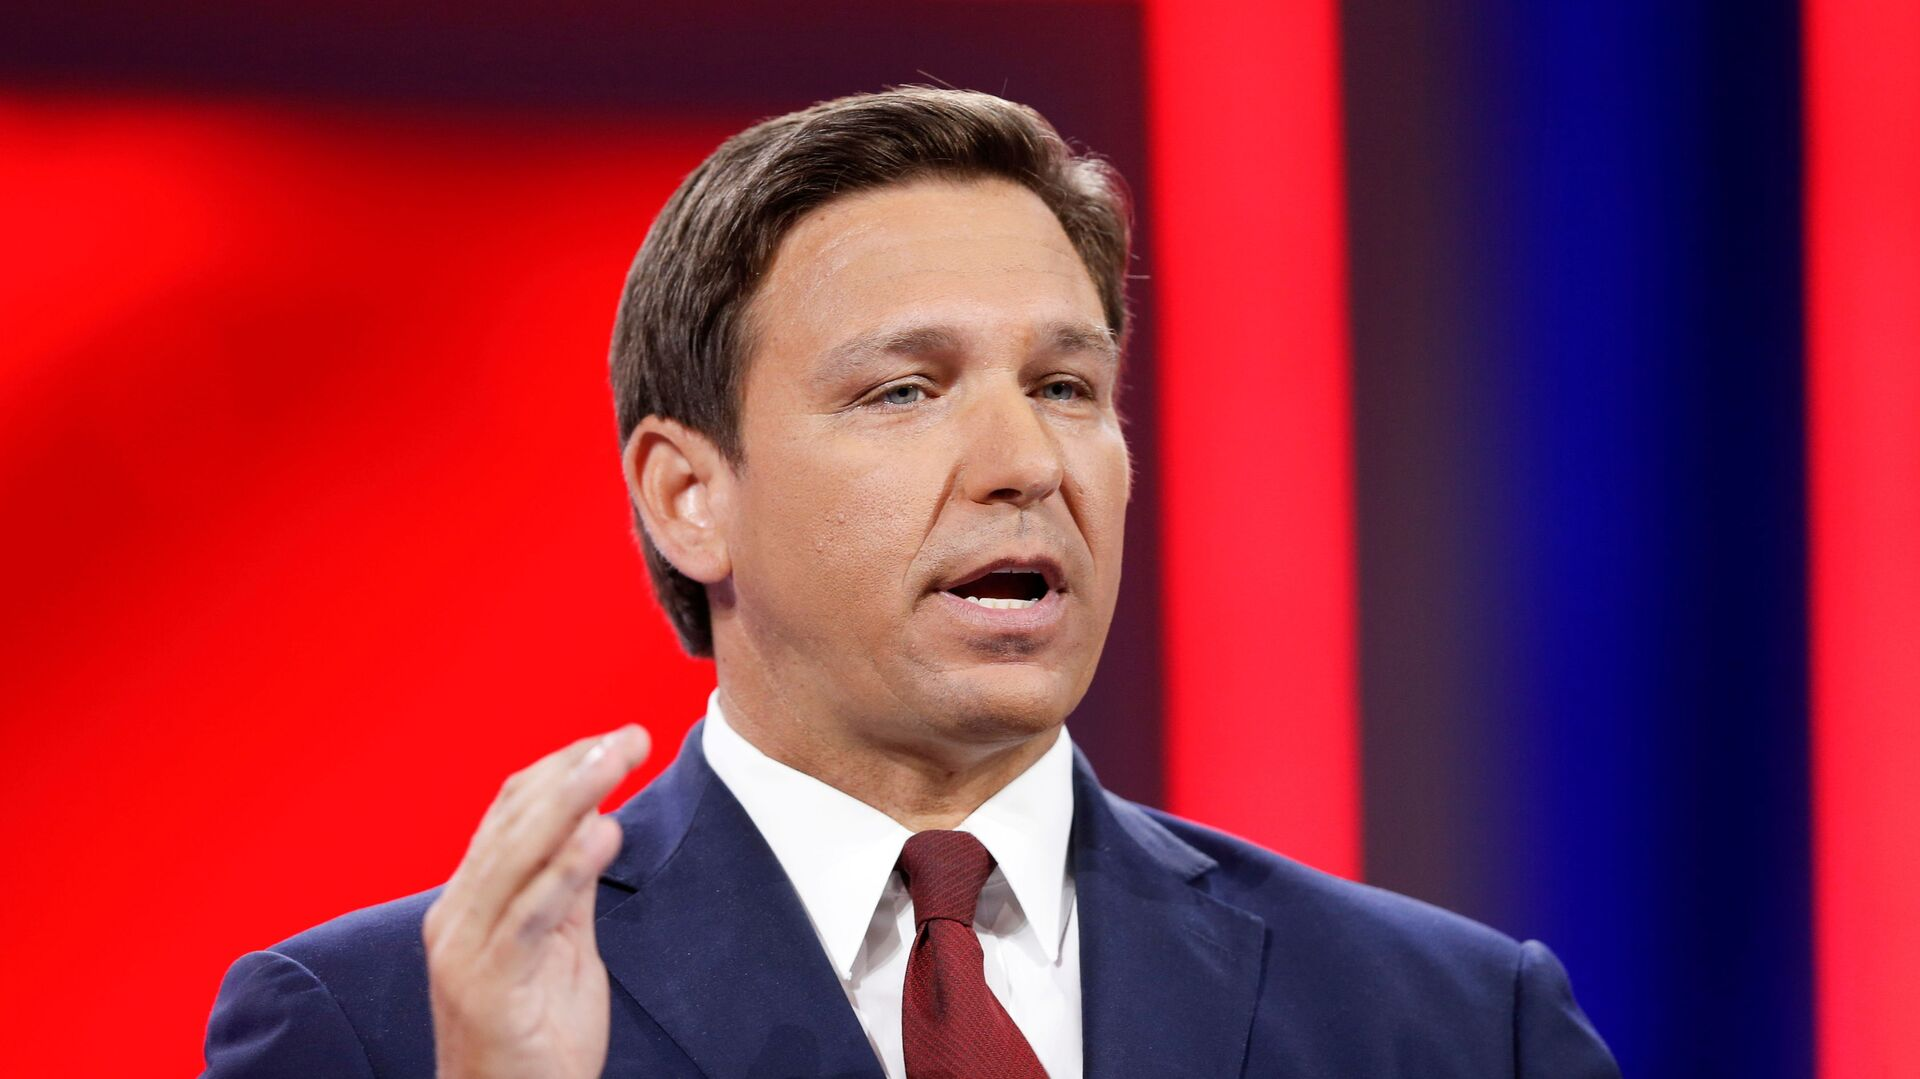 Florida Gov. Ron DeSantis speaks during the welcome segment of the Conservative Political Action Conference (CPAC) in Orlando, Florida, U.S. February 26, 2021. - Sputnik International, 1920, 17.09.2021